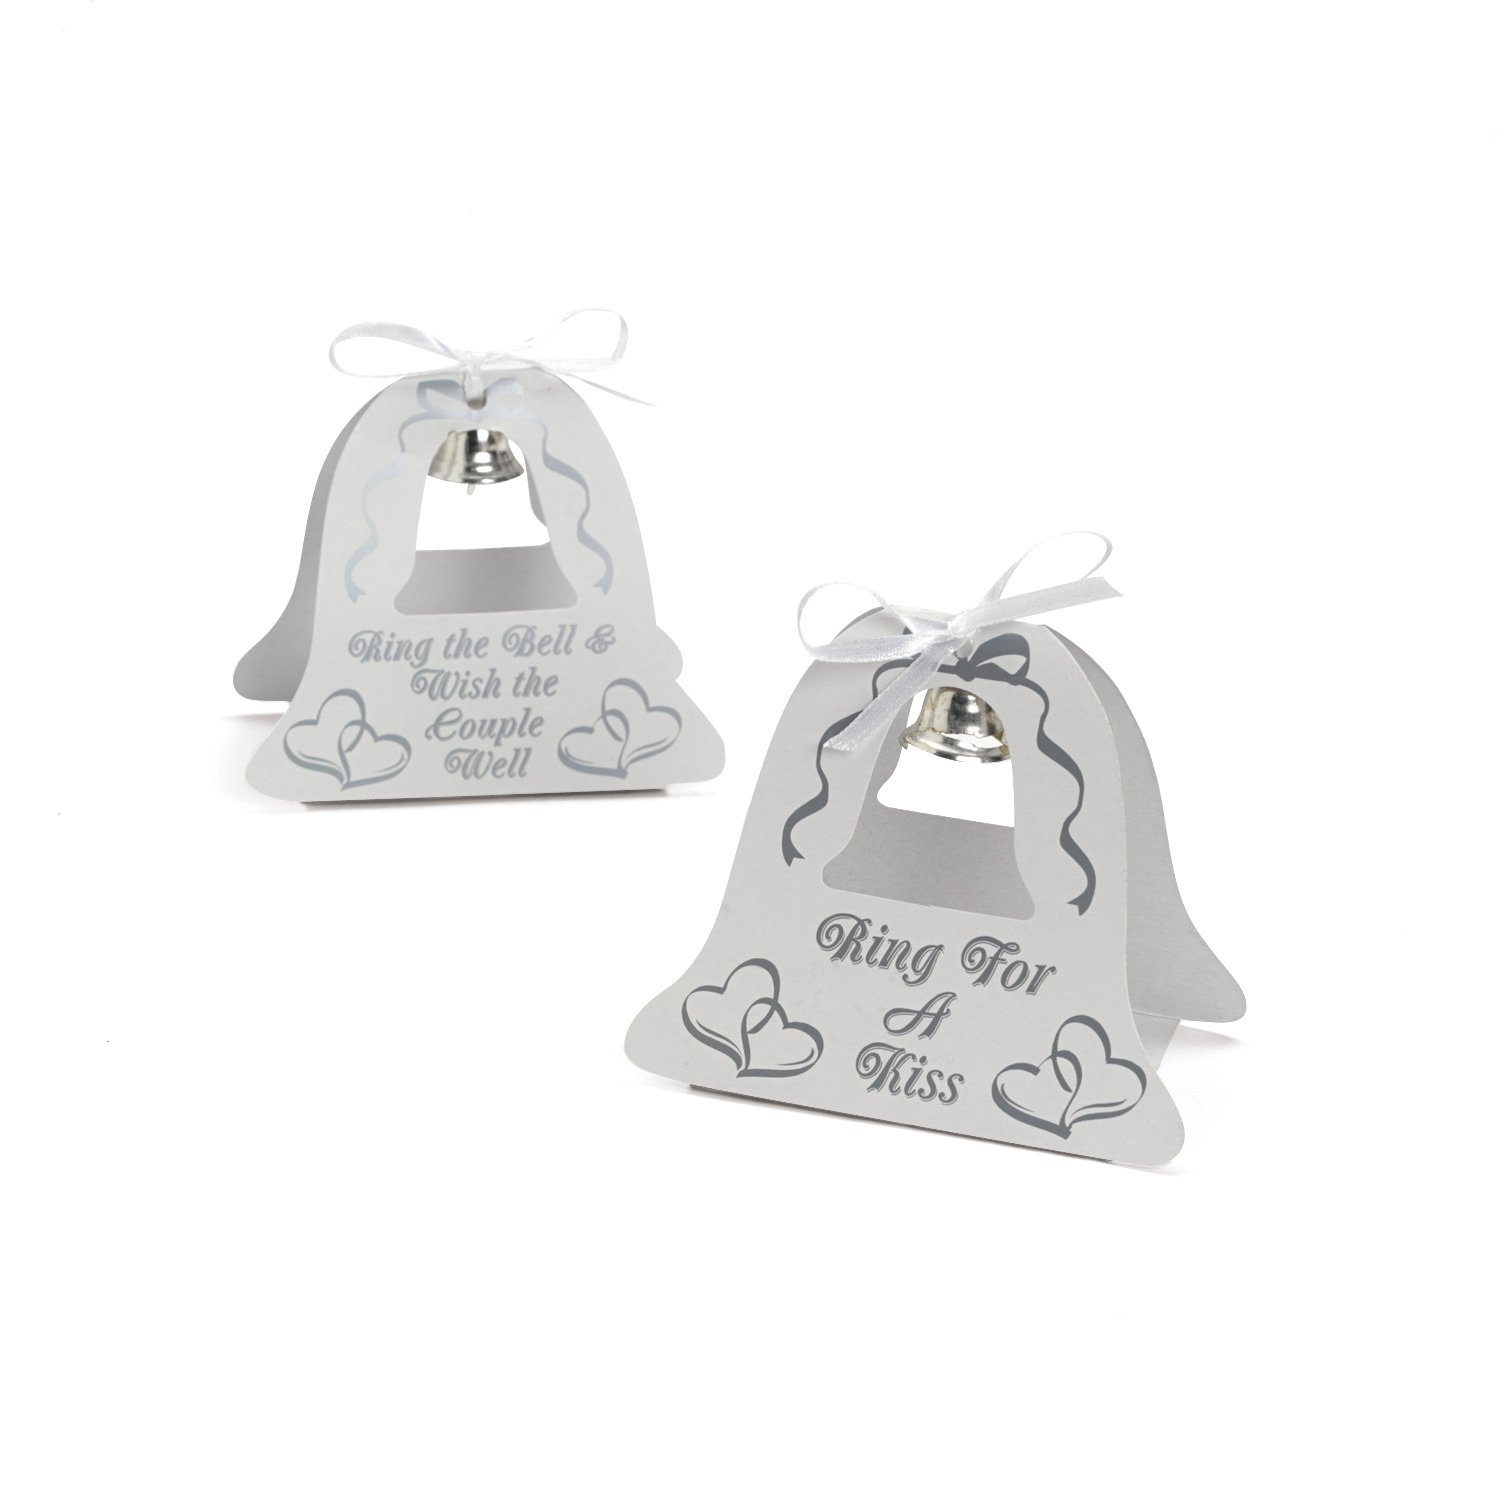 Cheap Wedding Bell A, find Wedding Bell A deals on line at Alibaba.com